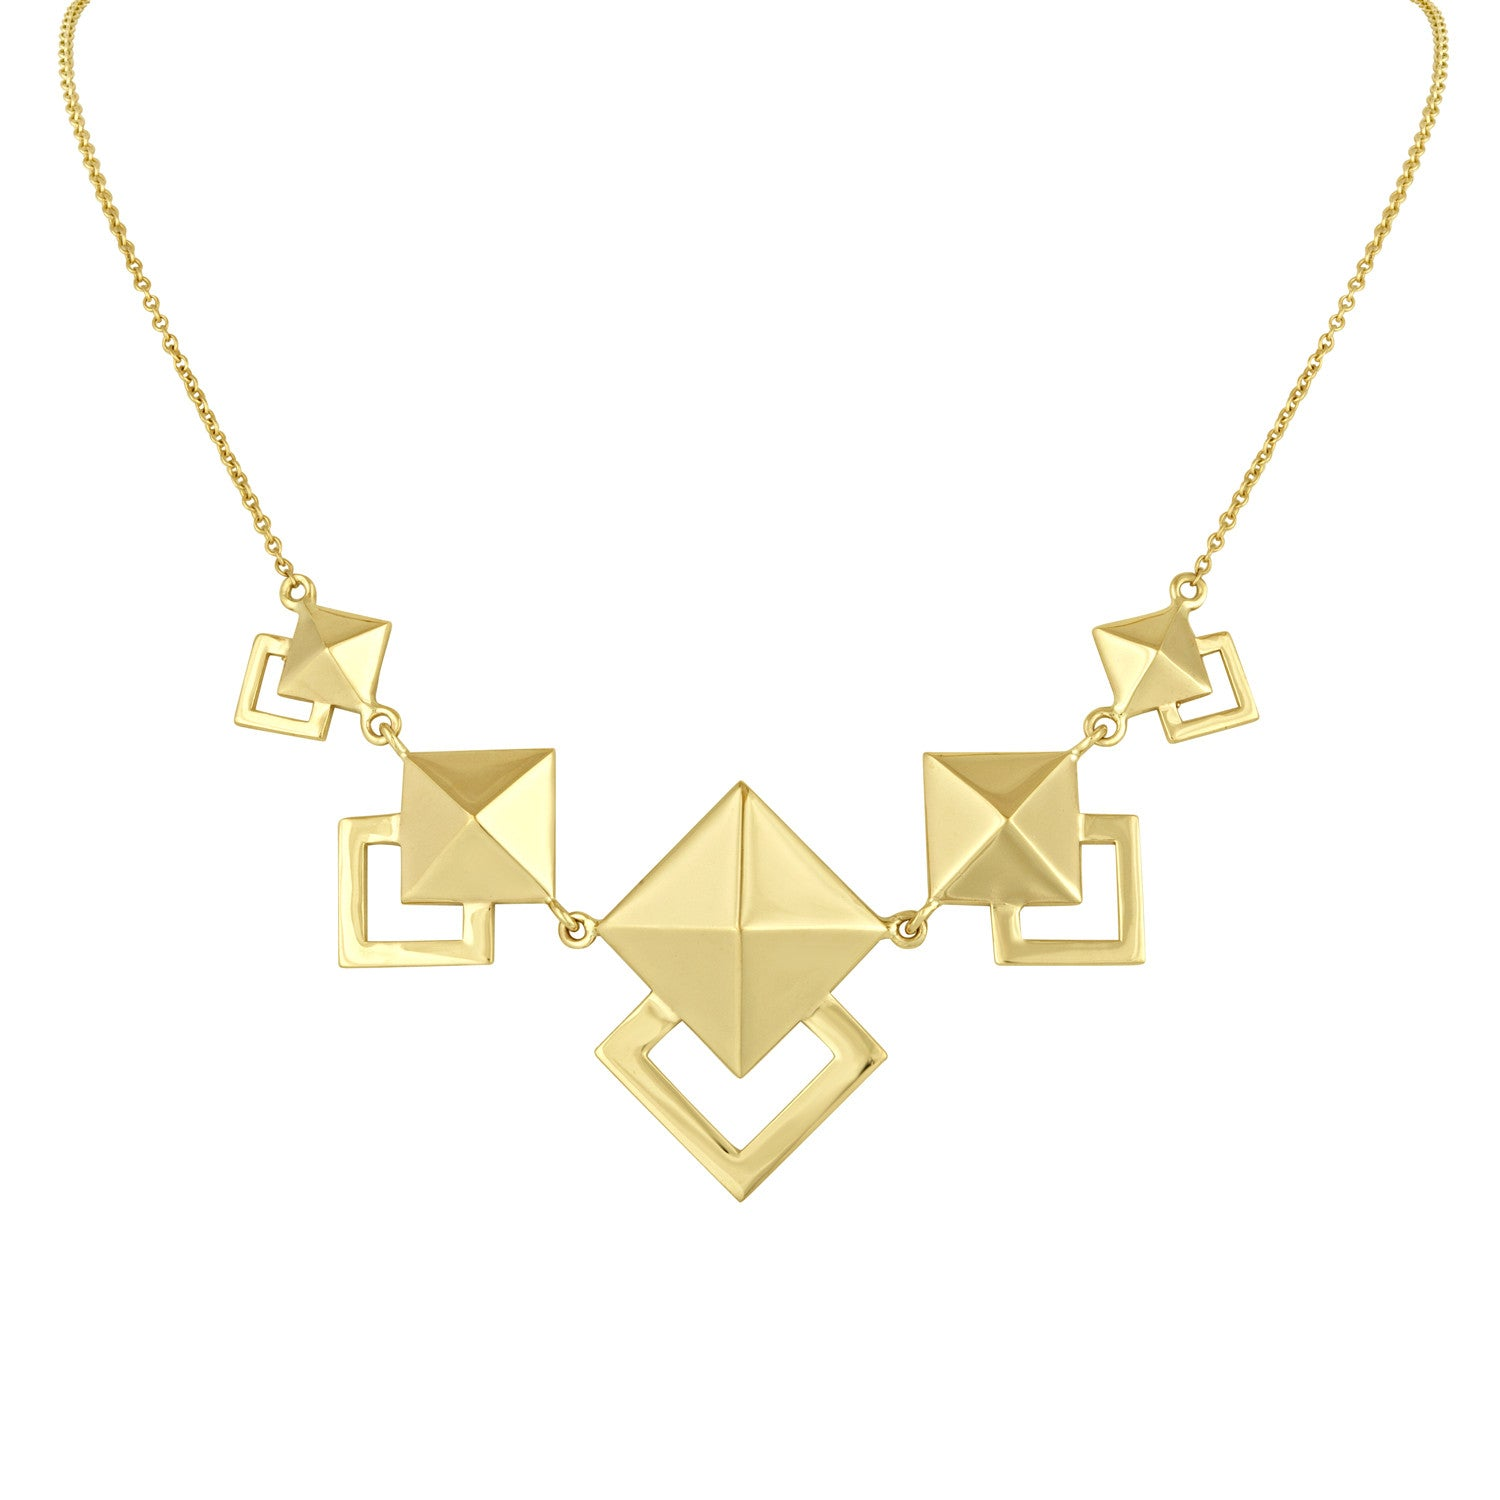 Gold Geometric Pyramid Necklace